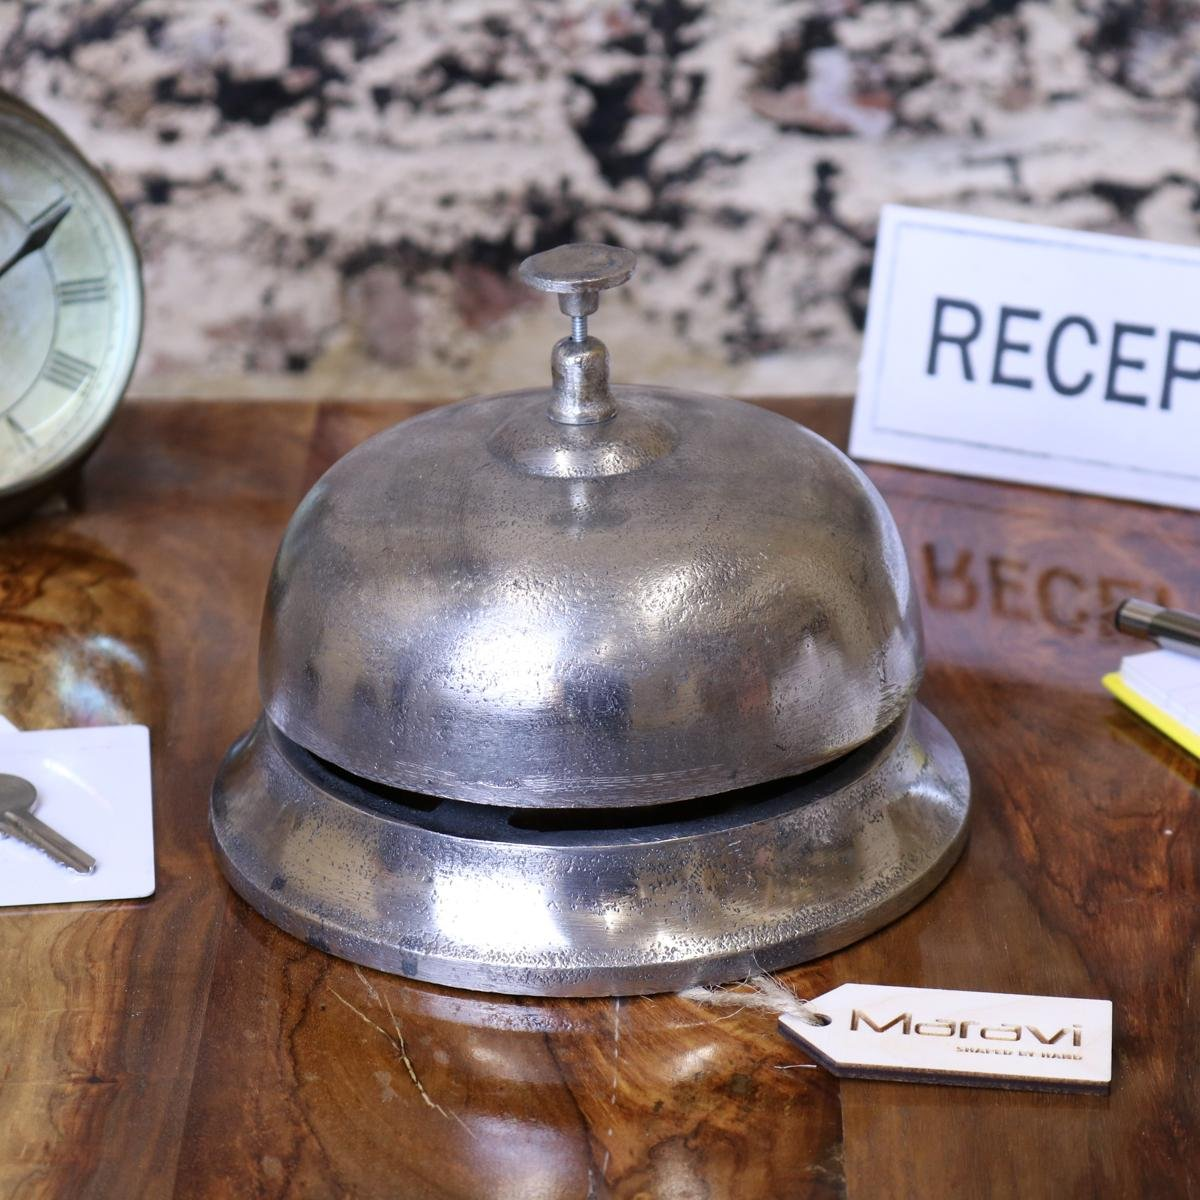 Maravi Tirsuli Large Vintage Reception Bell Hotel Silver Distressed Aluminium 17cm by Maravi